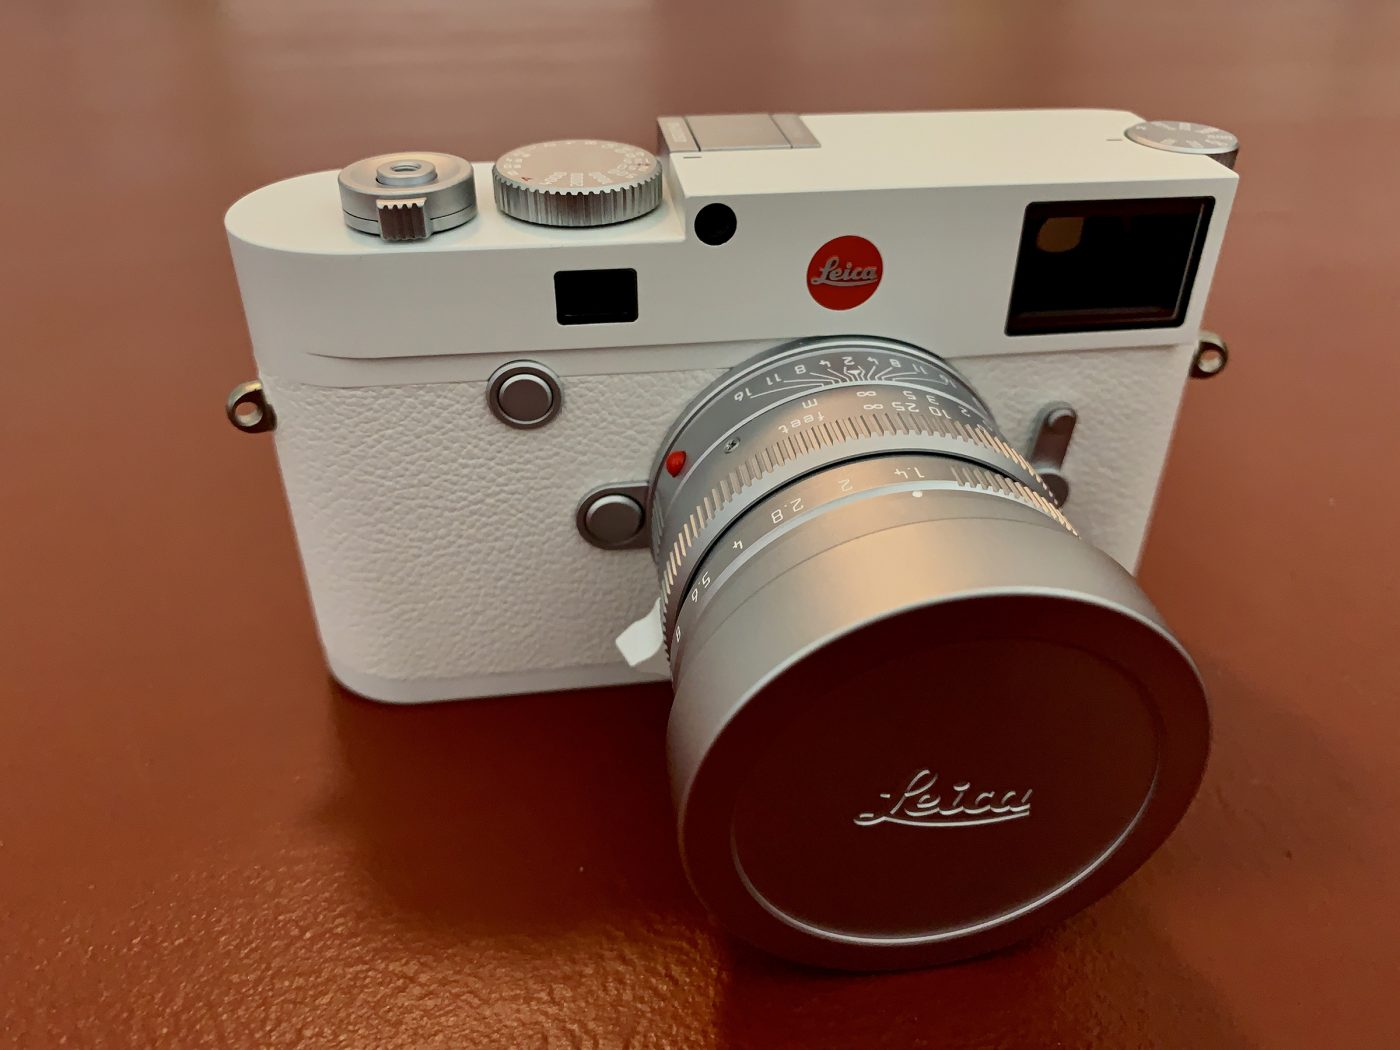 Leica M10P White with Summilux 1.4/50 White